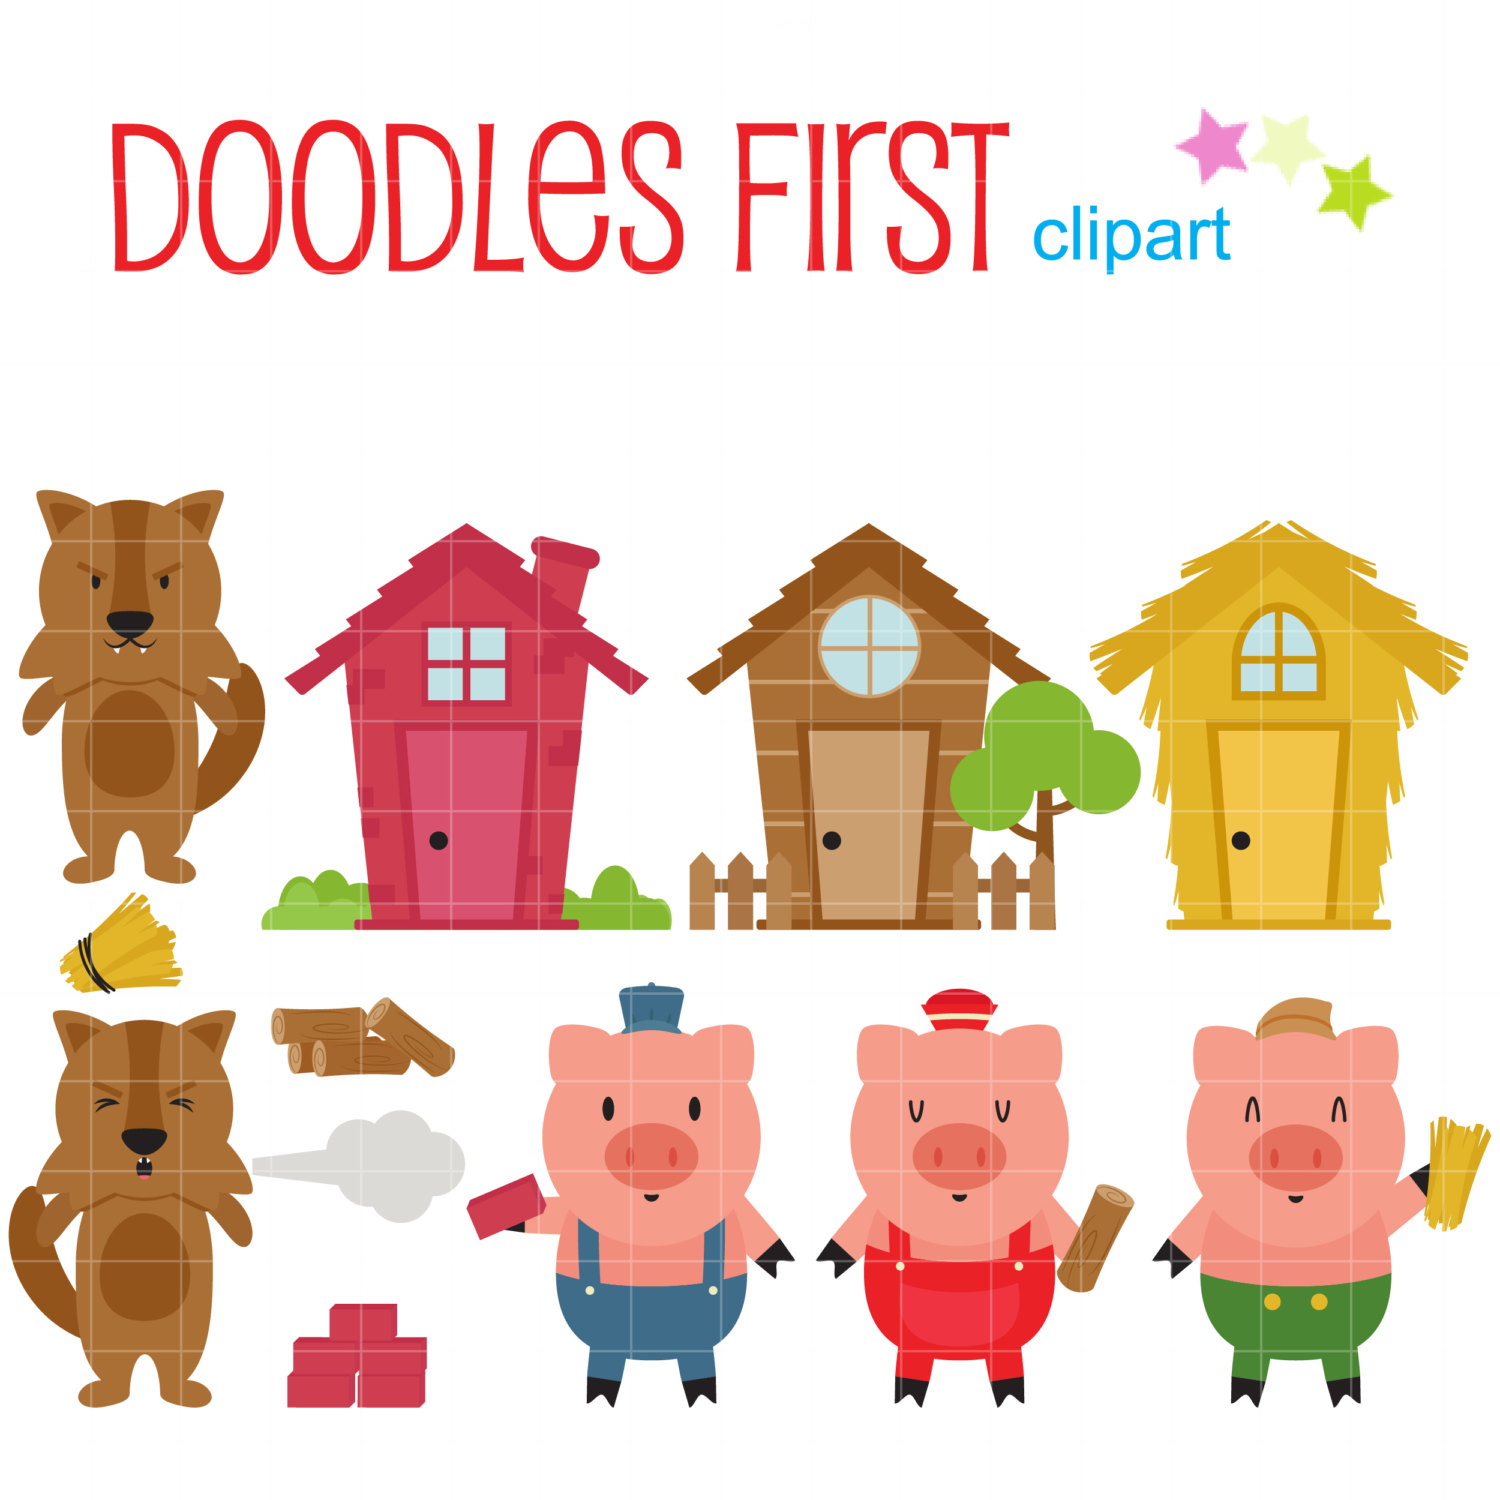 Three Little Pigs clipart set.